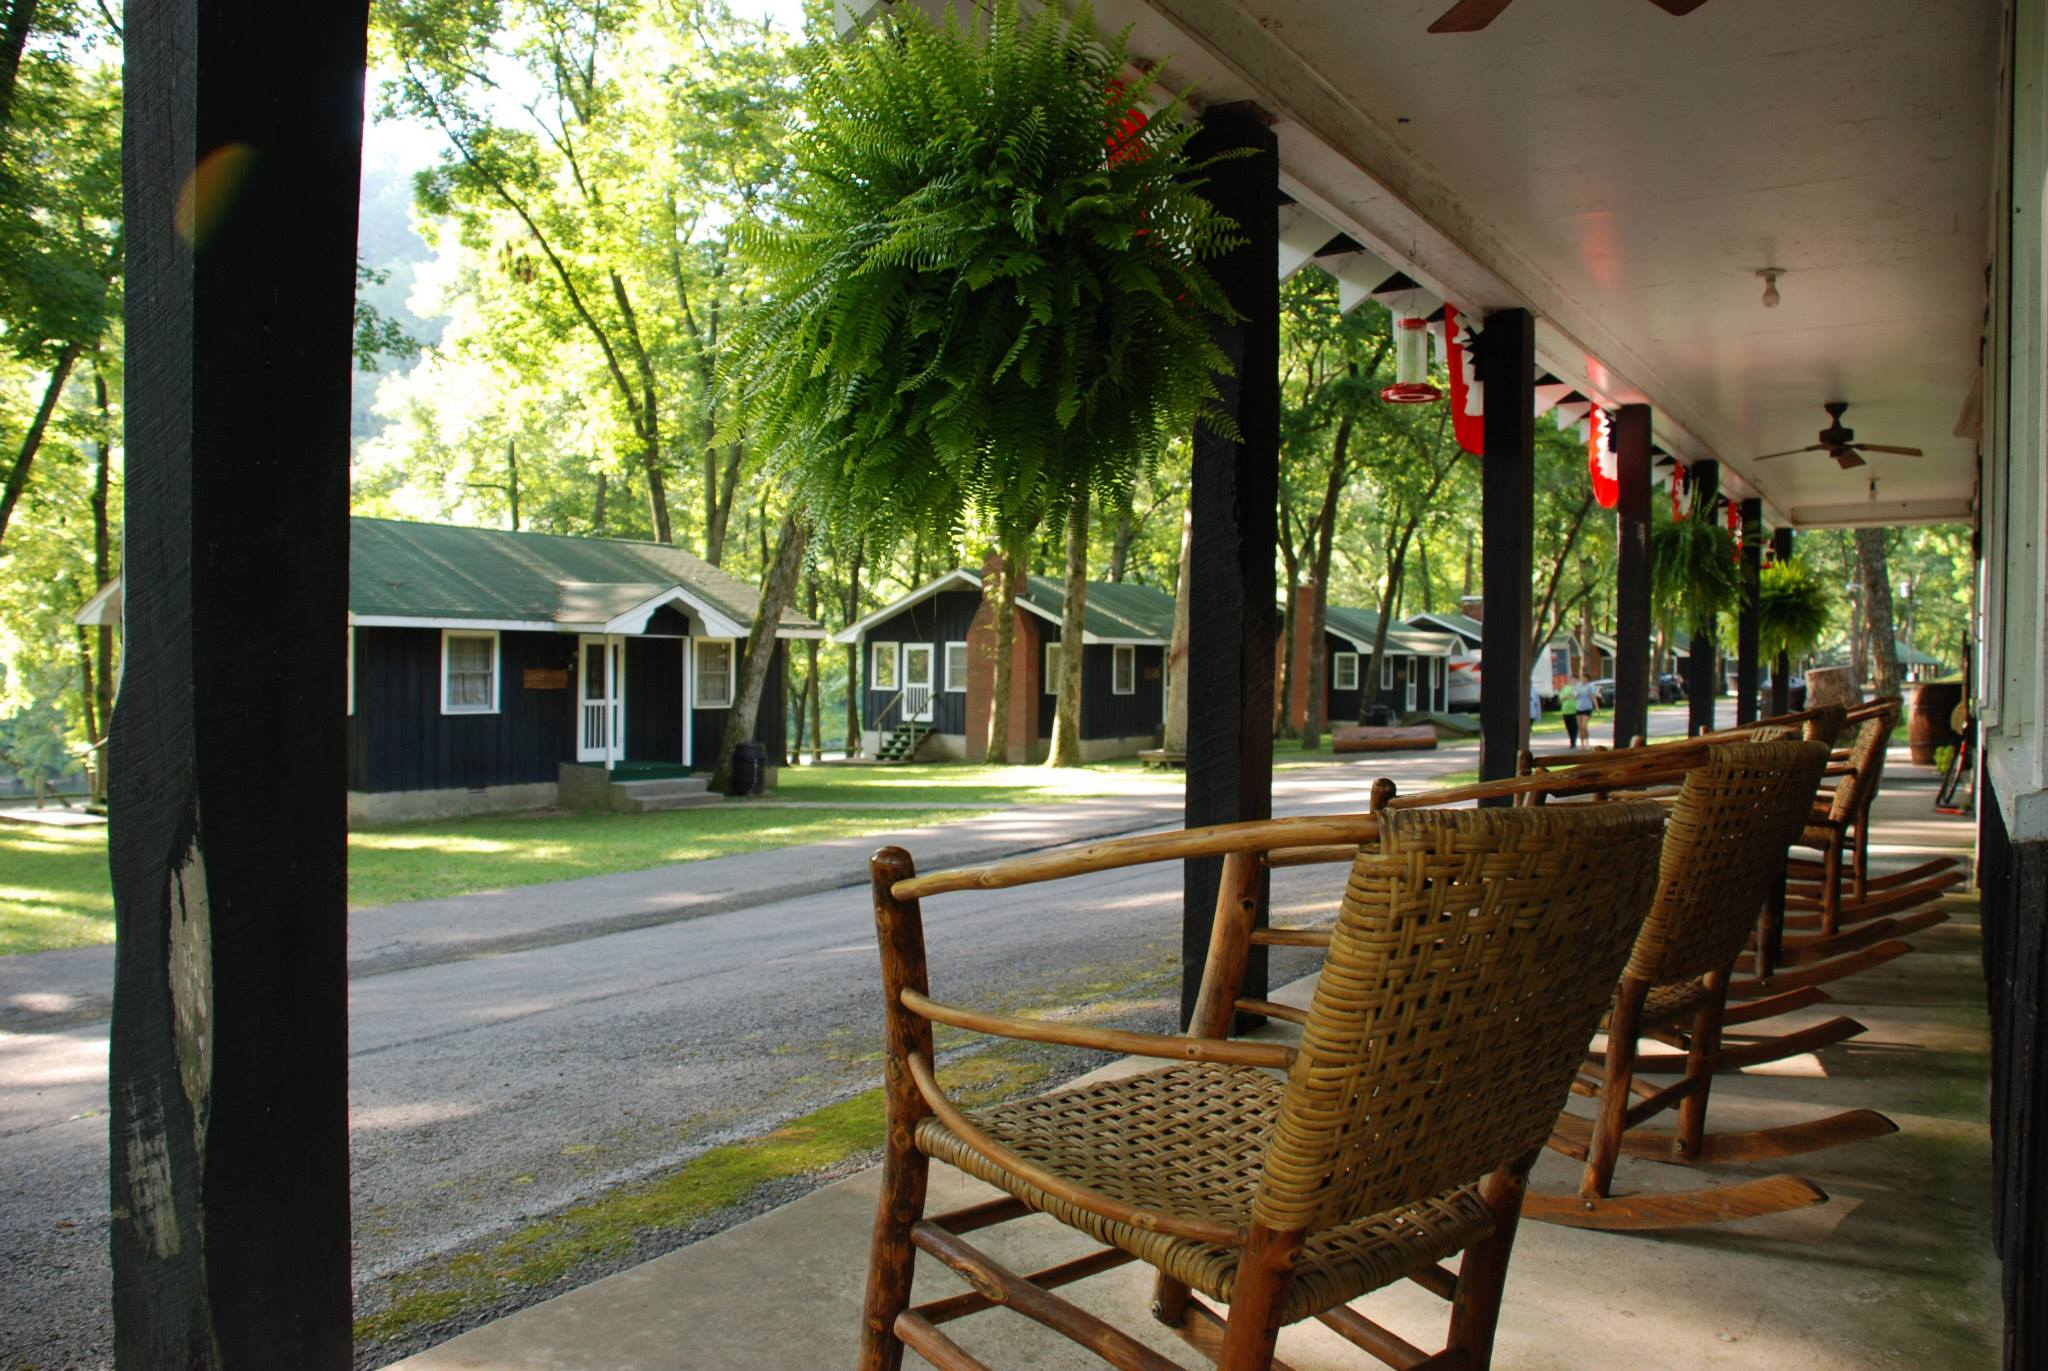 Enjoy a late summer weekend at the picturesque Bunker Hill Retreat.